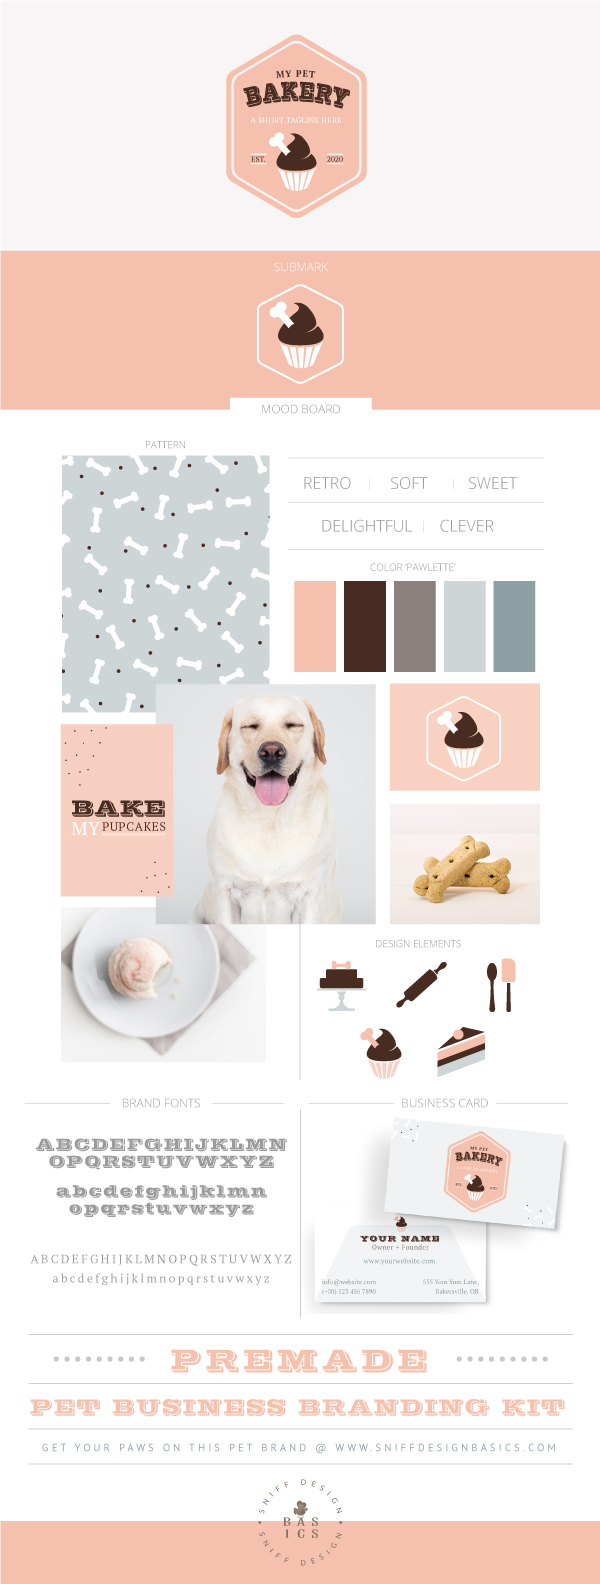 My pet bakery premade pet business branding kit design by Sniff Design Basics